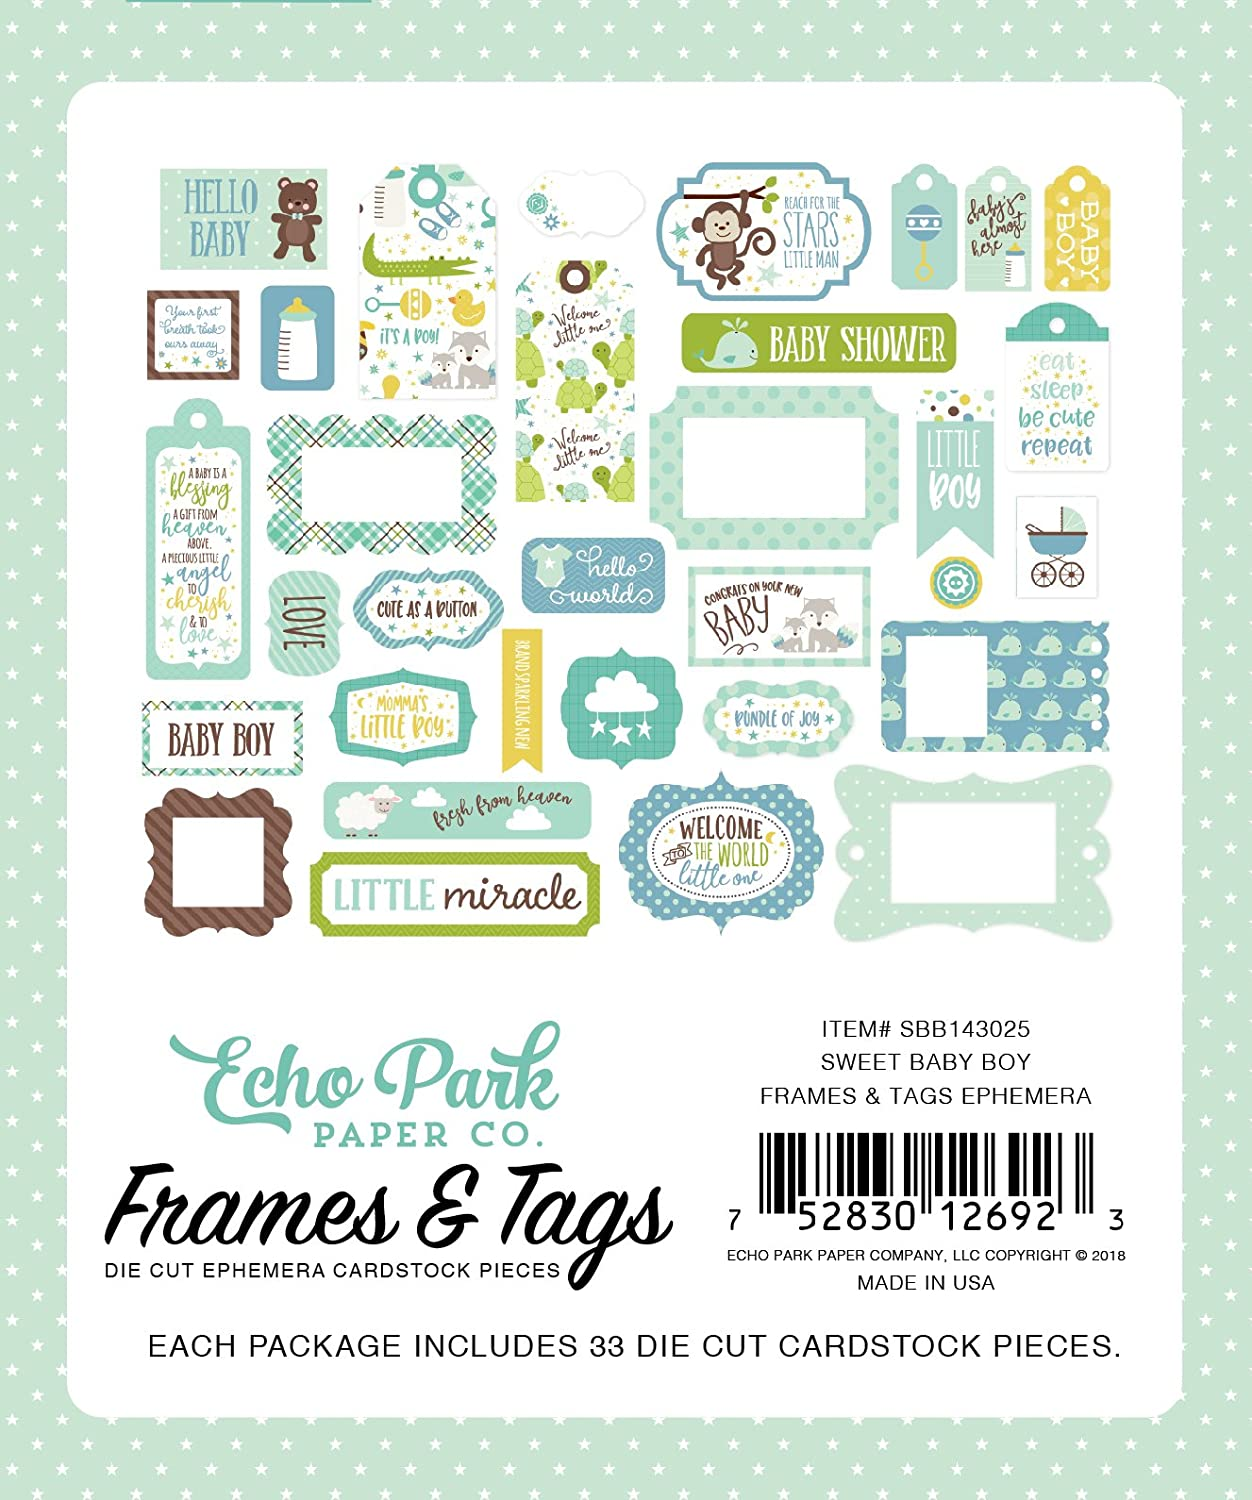 Echo Park Paper Company Sweet Baby Boy Frames /& Tags